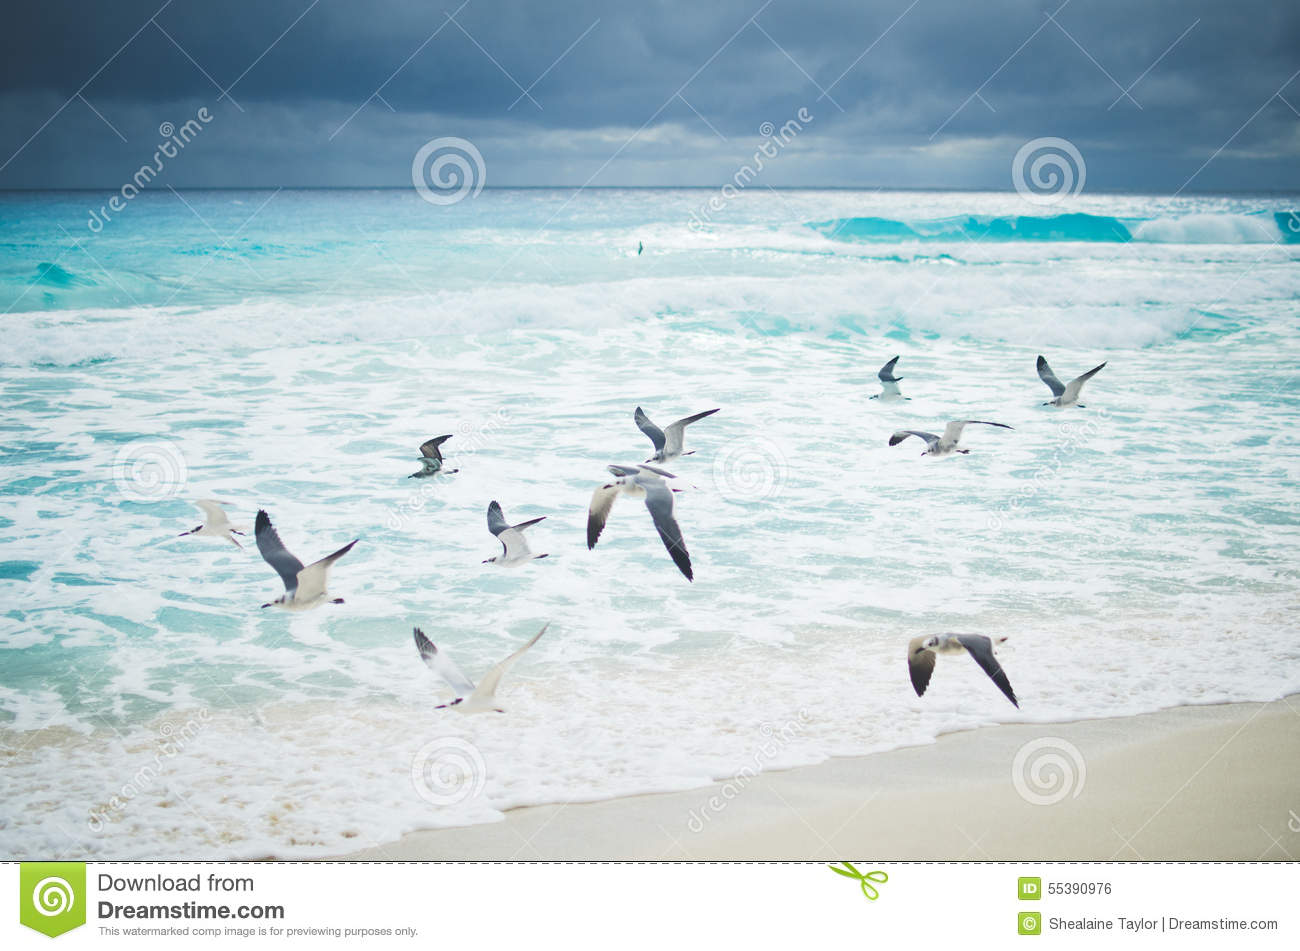 Seagulls Flying Over Ocean Waves Stock Photo - Image: 55390976